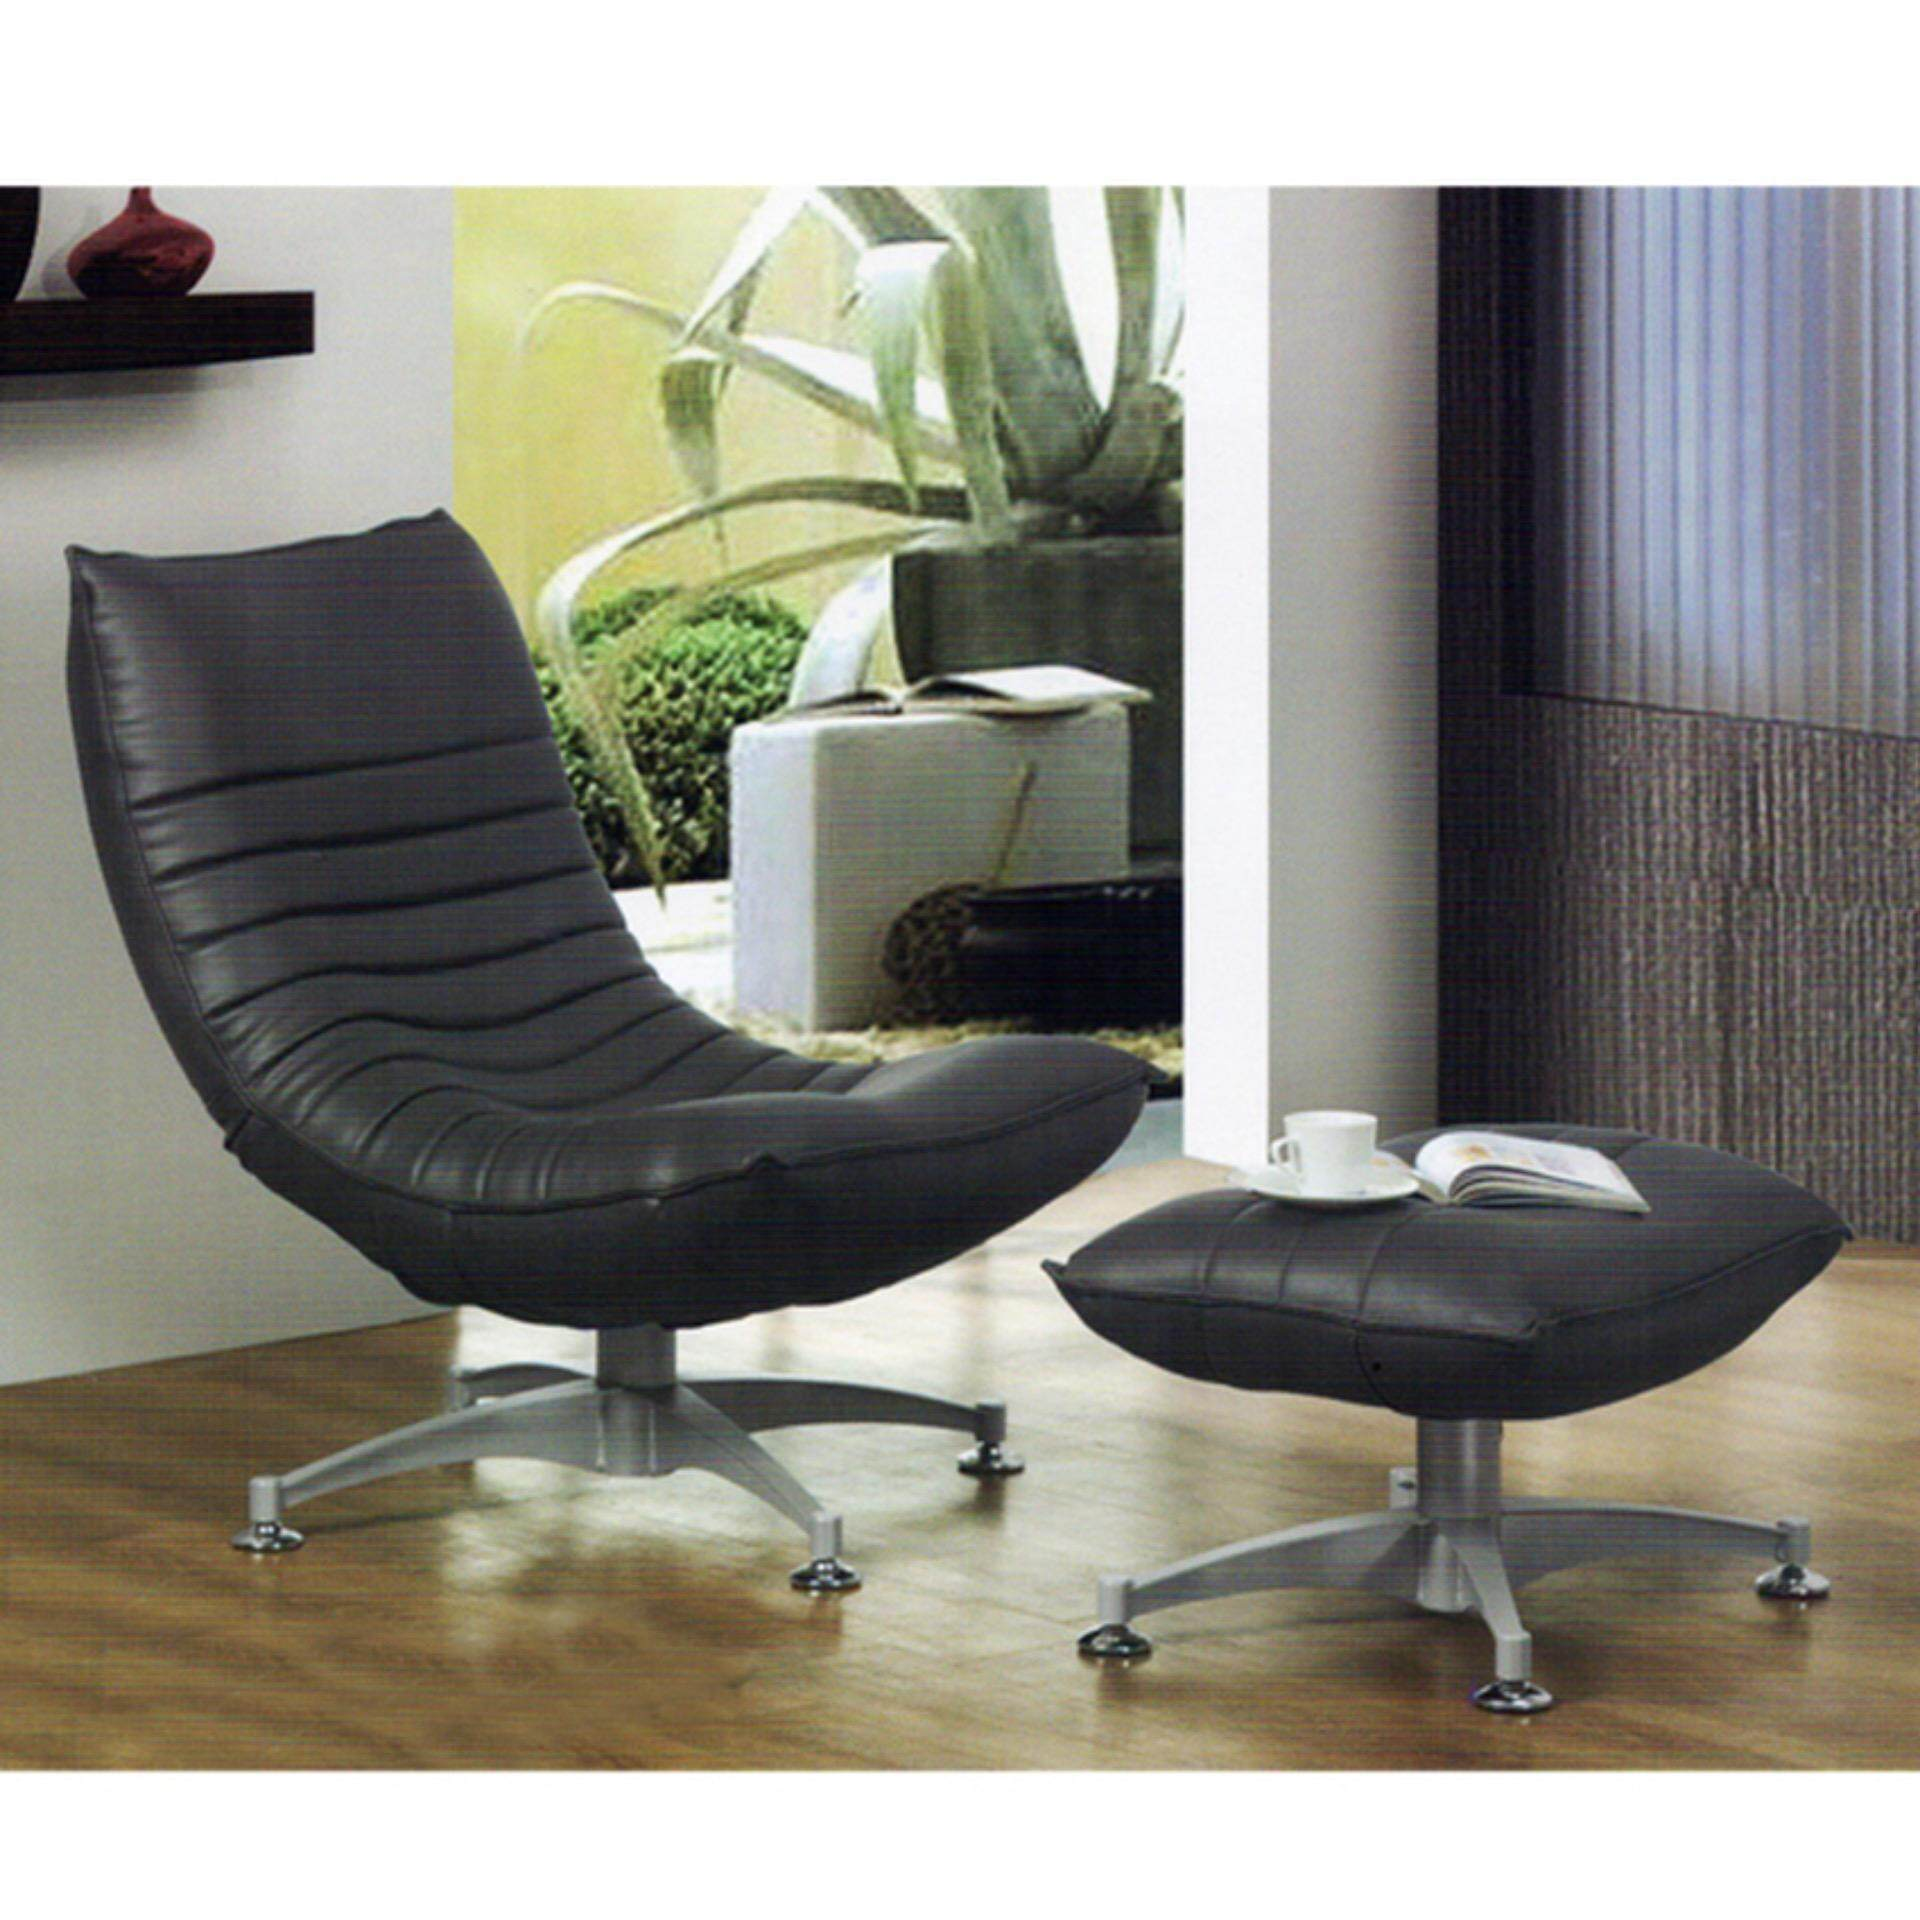 Zantoi Grey Relax TV Chair with Ottoman Recliner Hall Chair Sleep Chair Nap Chair (Life-Time Warranty)